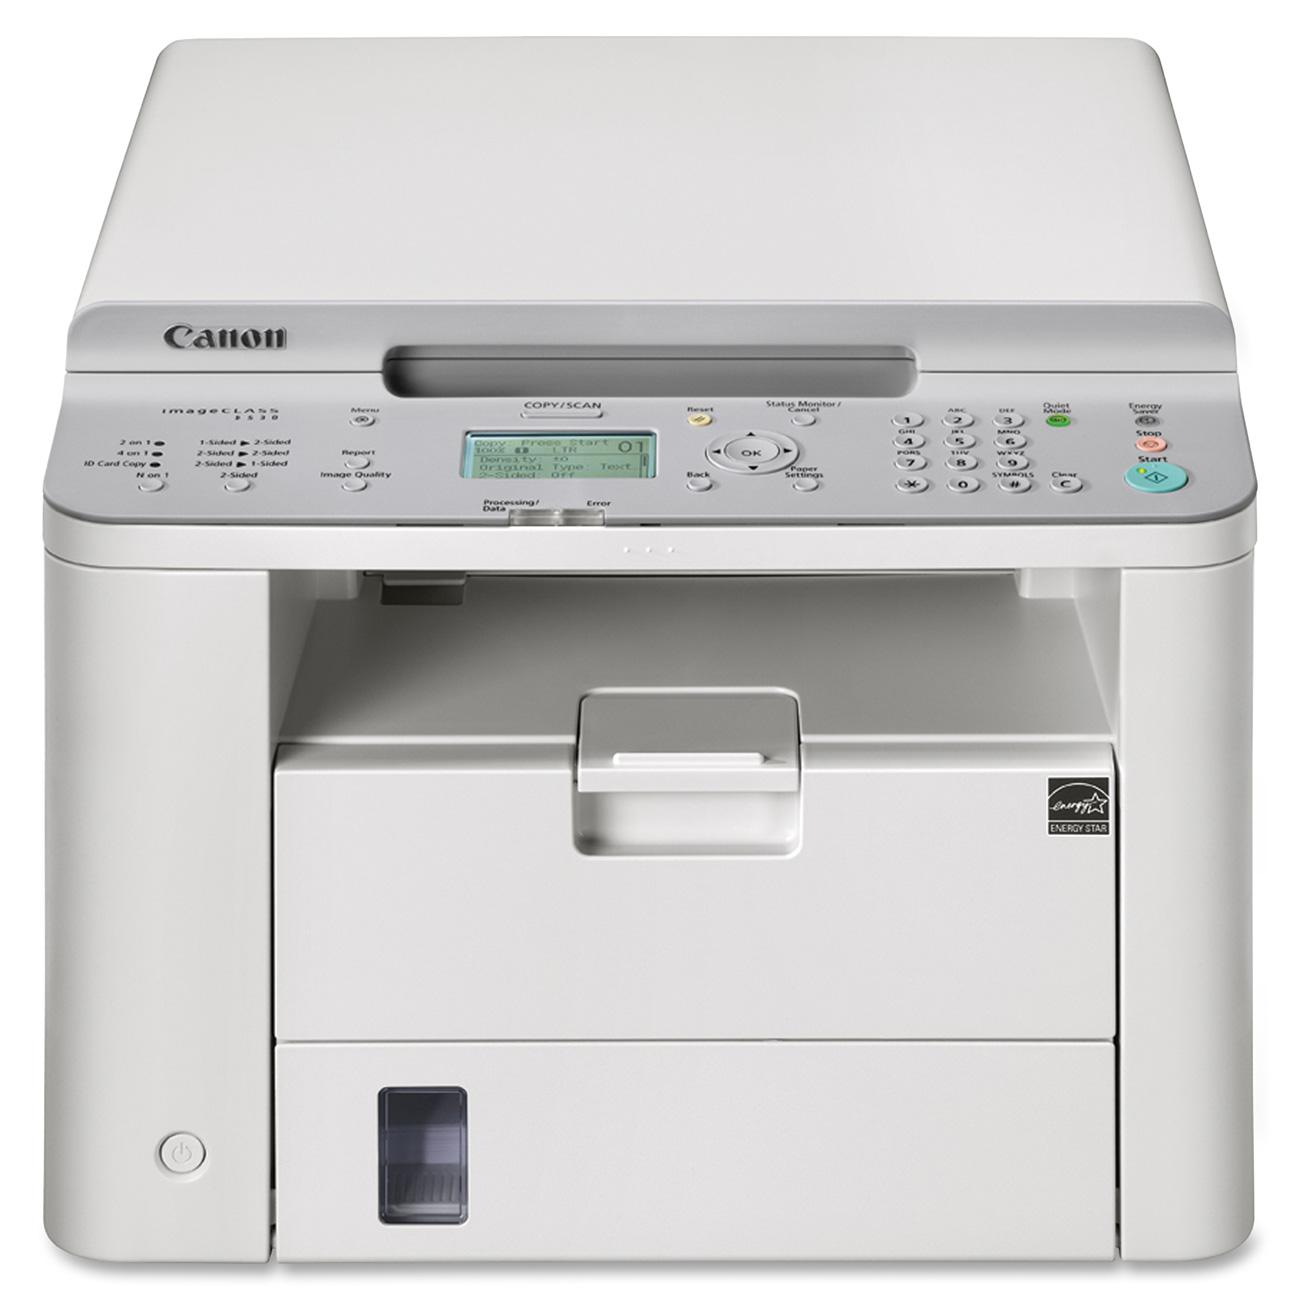 Canon imageCLASS D530 Multifunction Laser Printer, Copy/Print/Scan